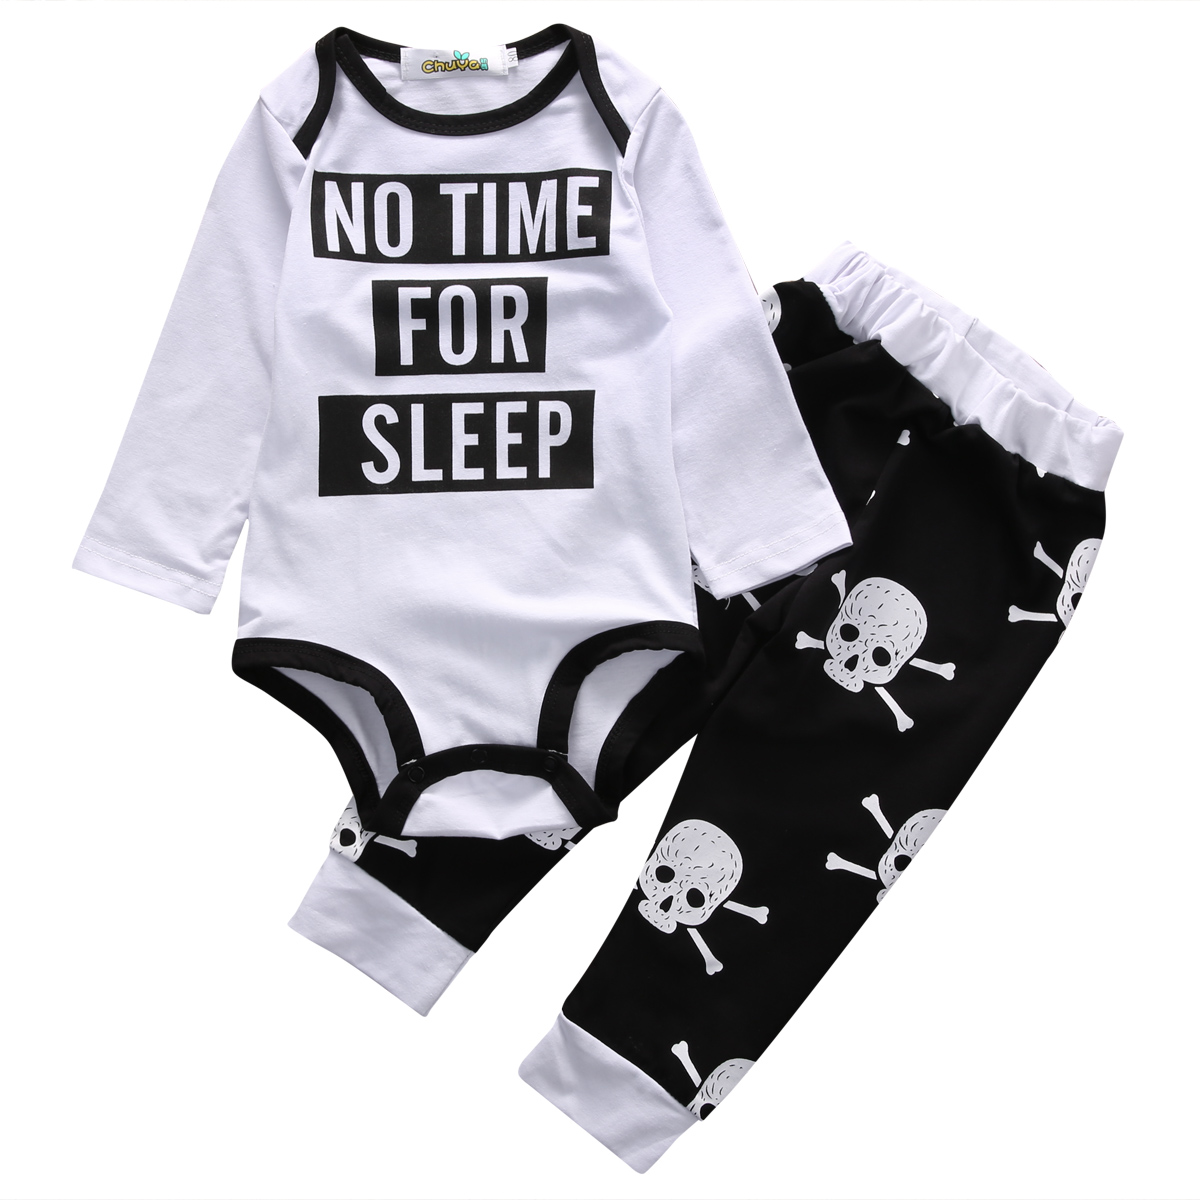 2016 Autumn style infant clothes baby clothing sets Baby ...